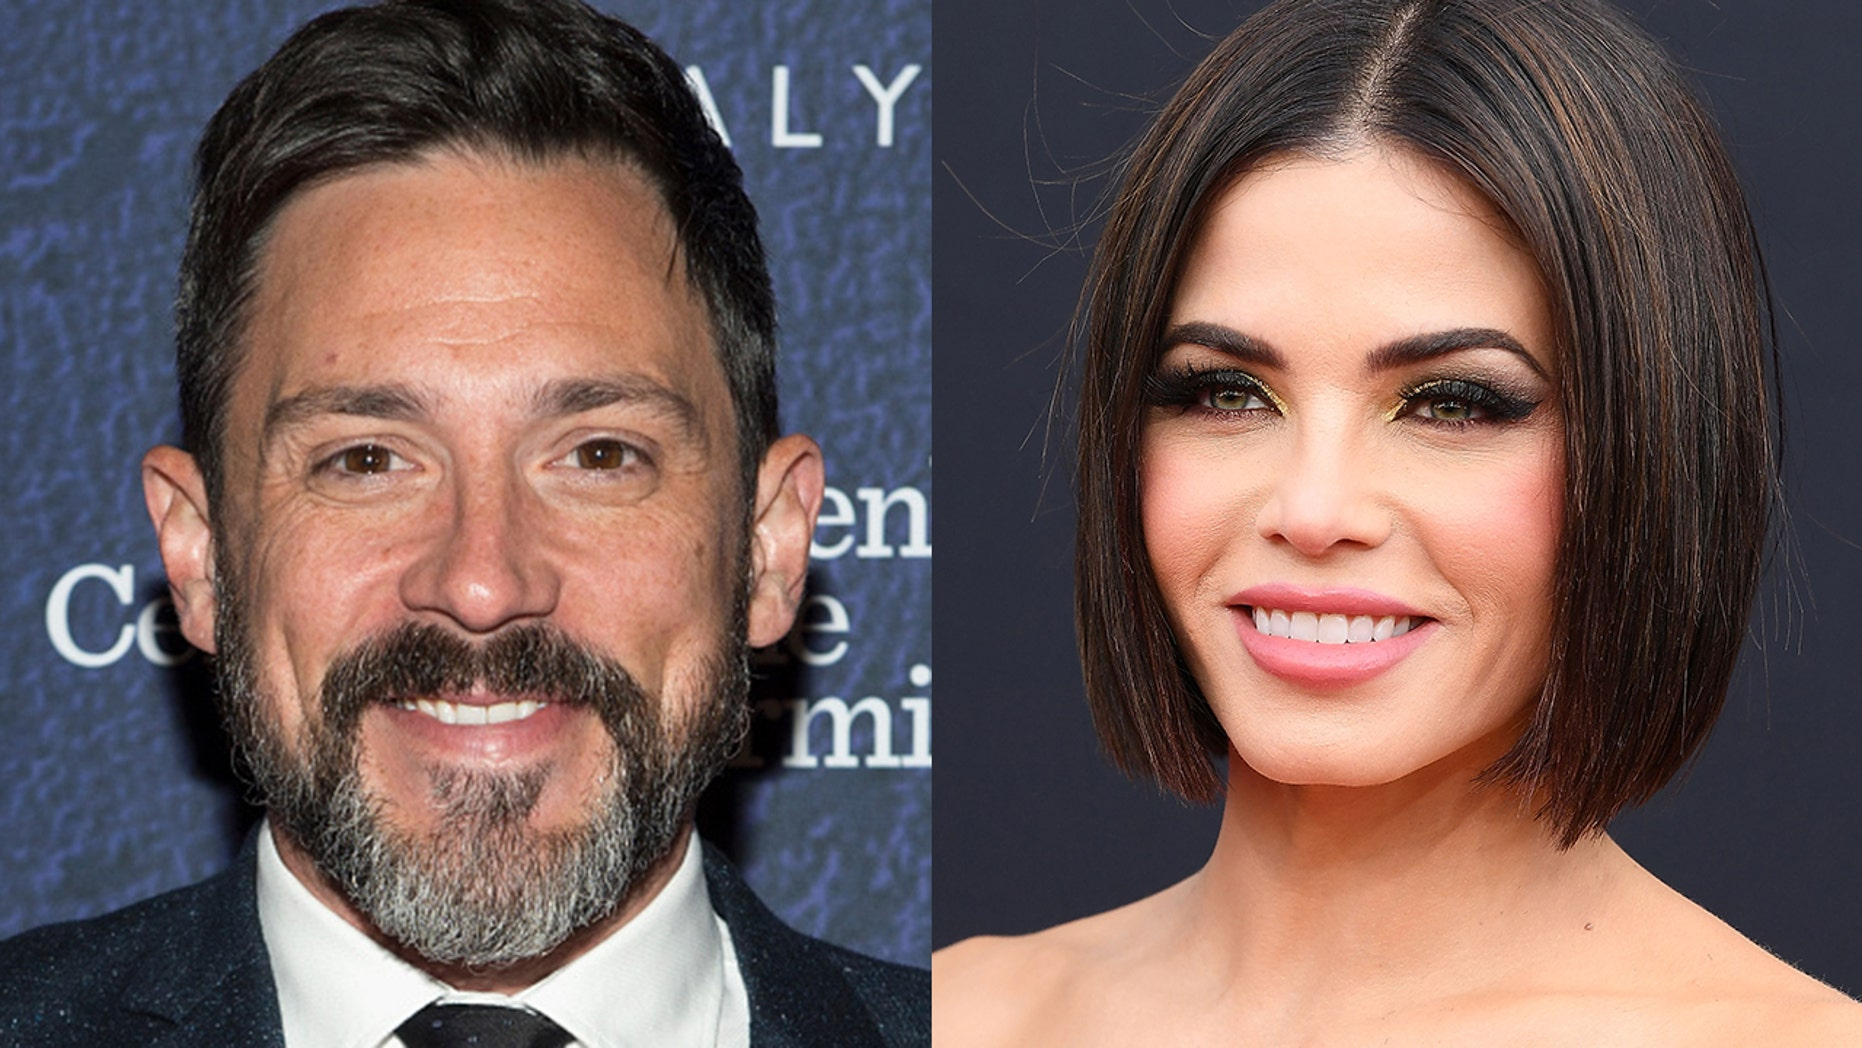 Jenna Dewan has moved on from her ex Channing Tatum and is reported dating Tony-winner Steve Kazee.